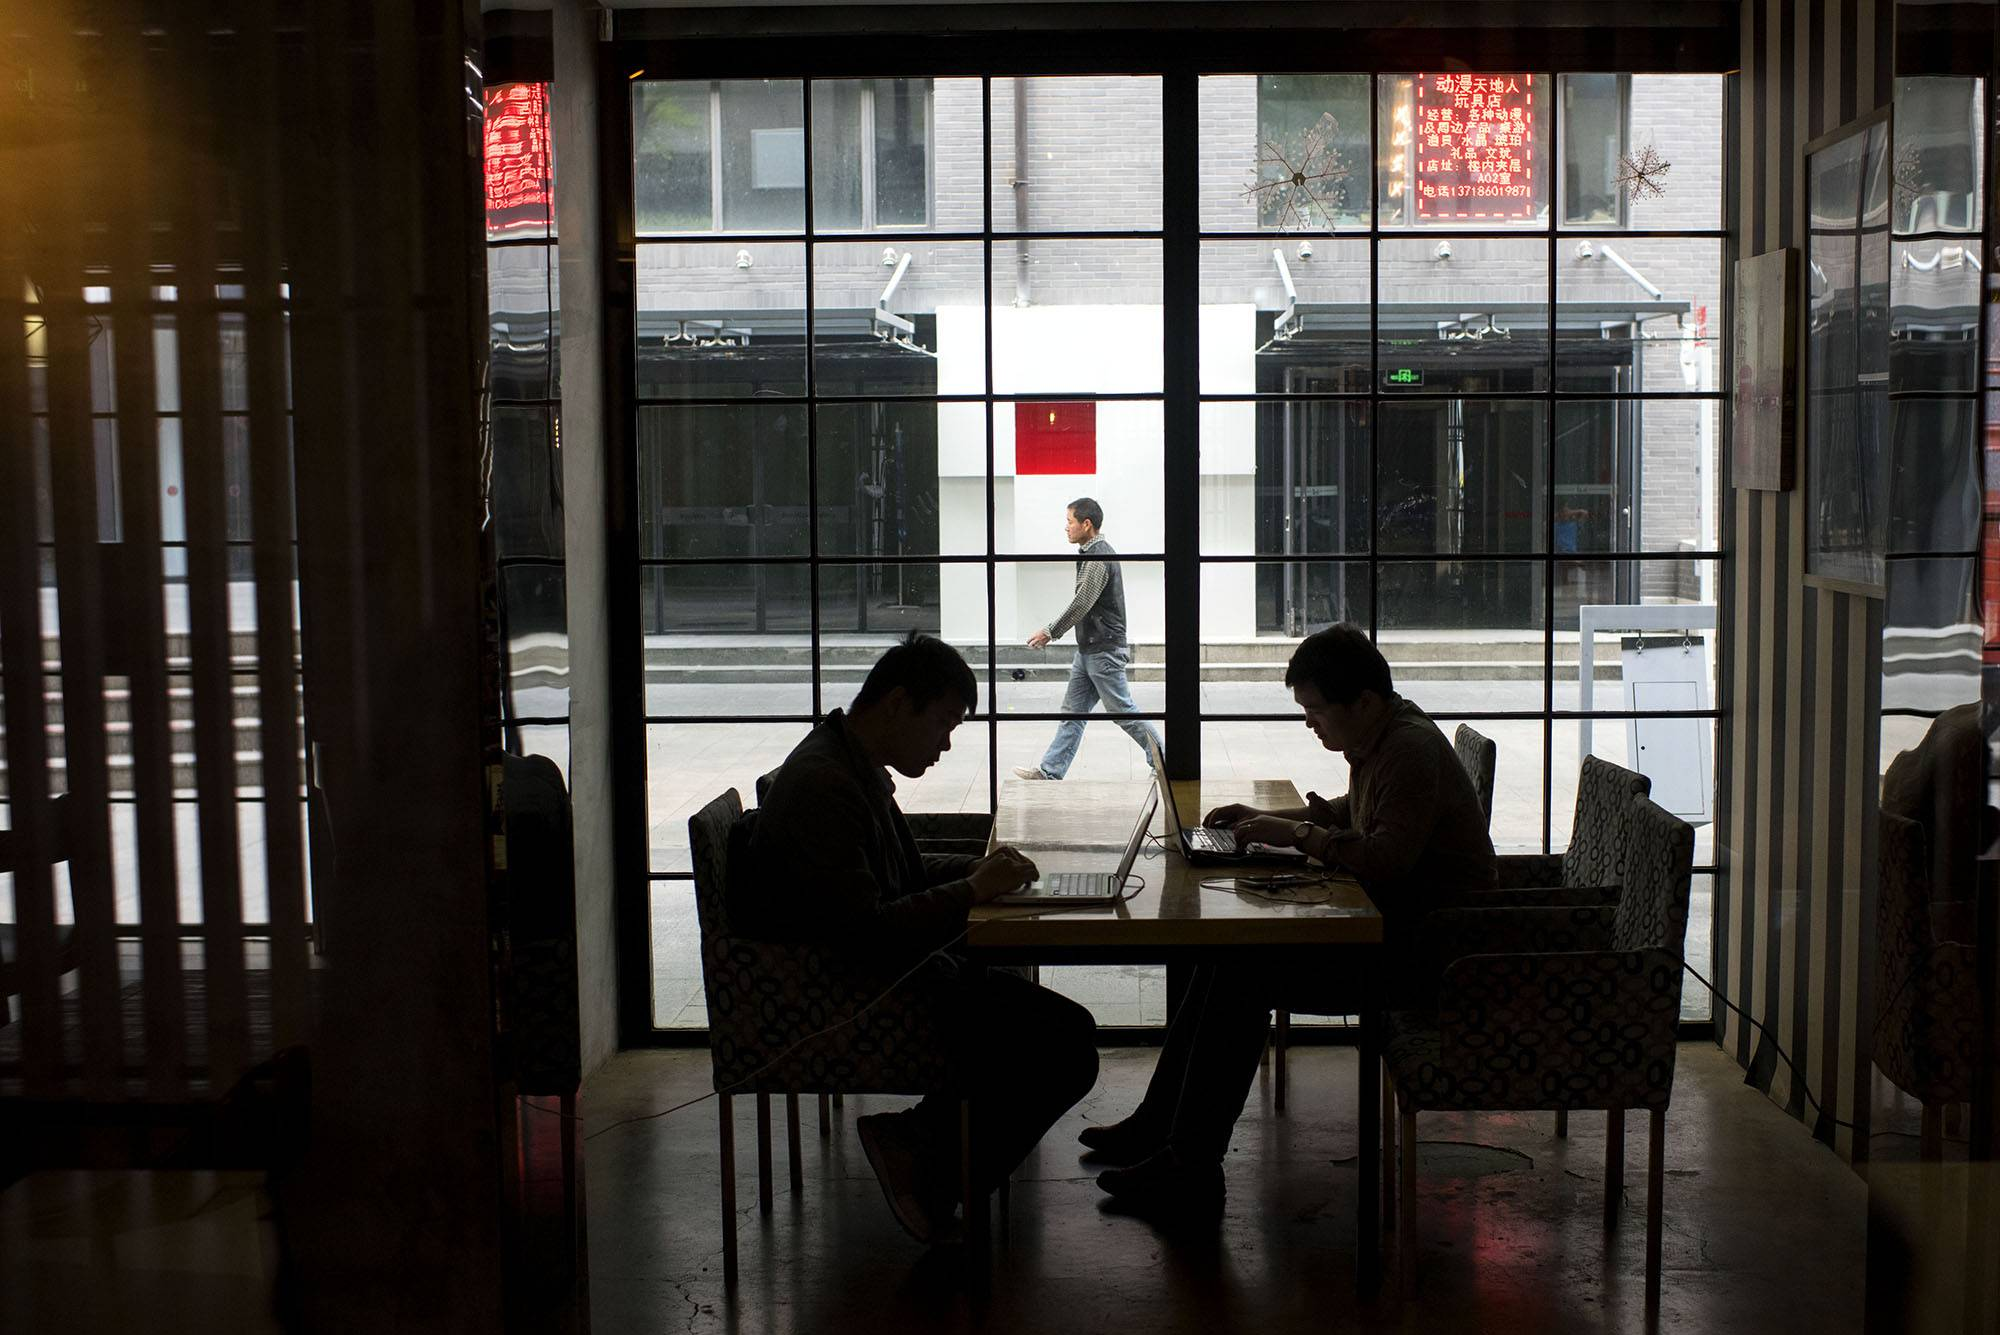 The 3W Coffee in Beijing. The truth is that behind the Great Firewall — the system of censorship designed to block content that could challenge the Chinese Communist Party — China's tech scene is flourishing in a parallel universe.